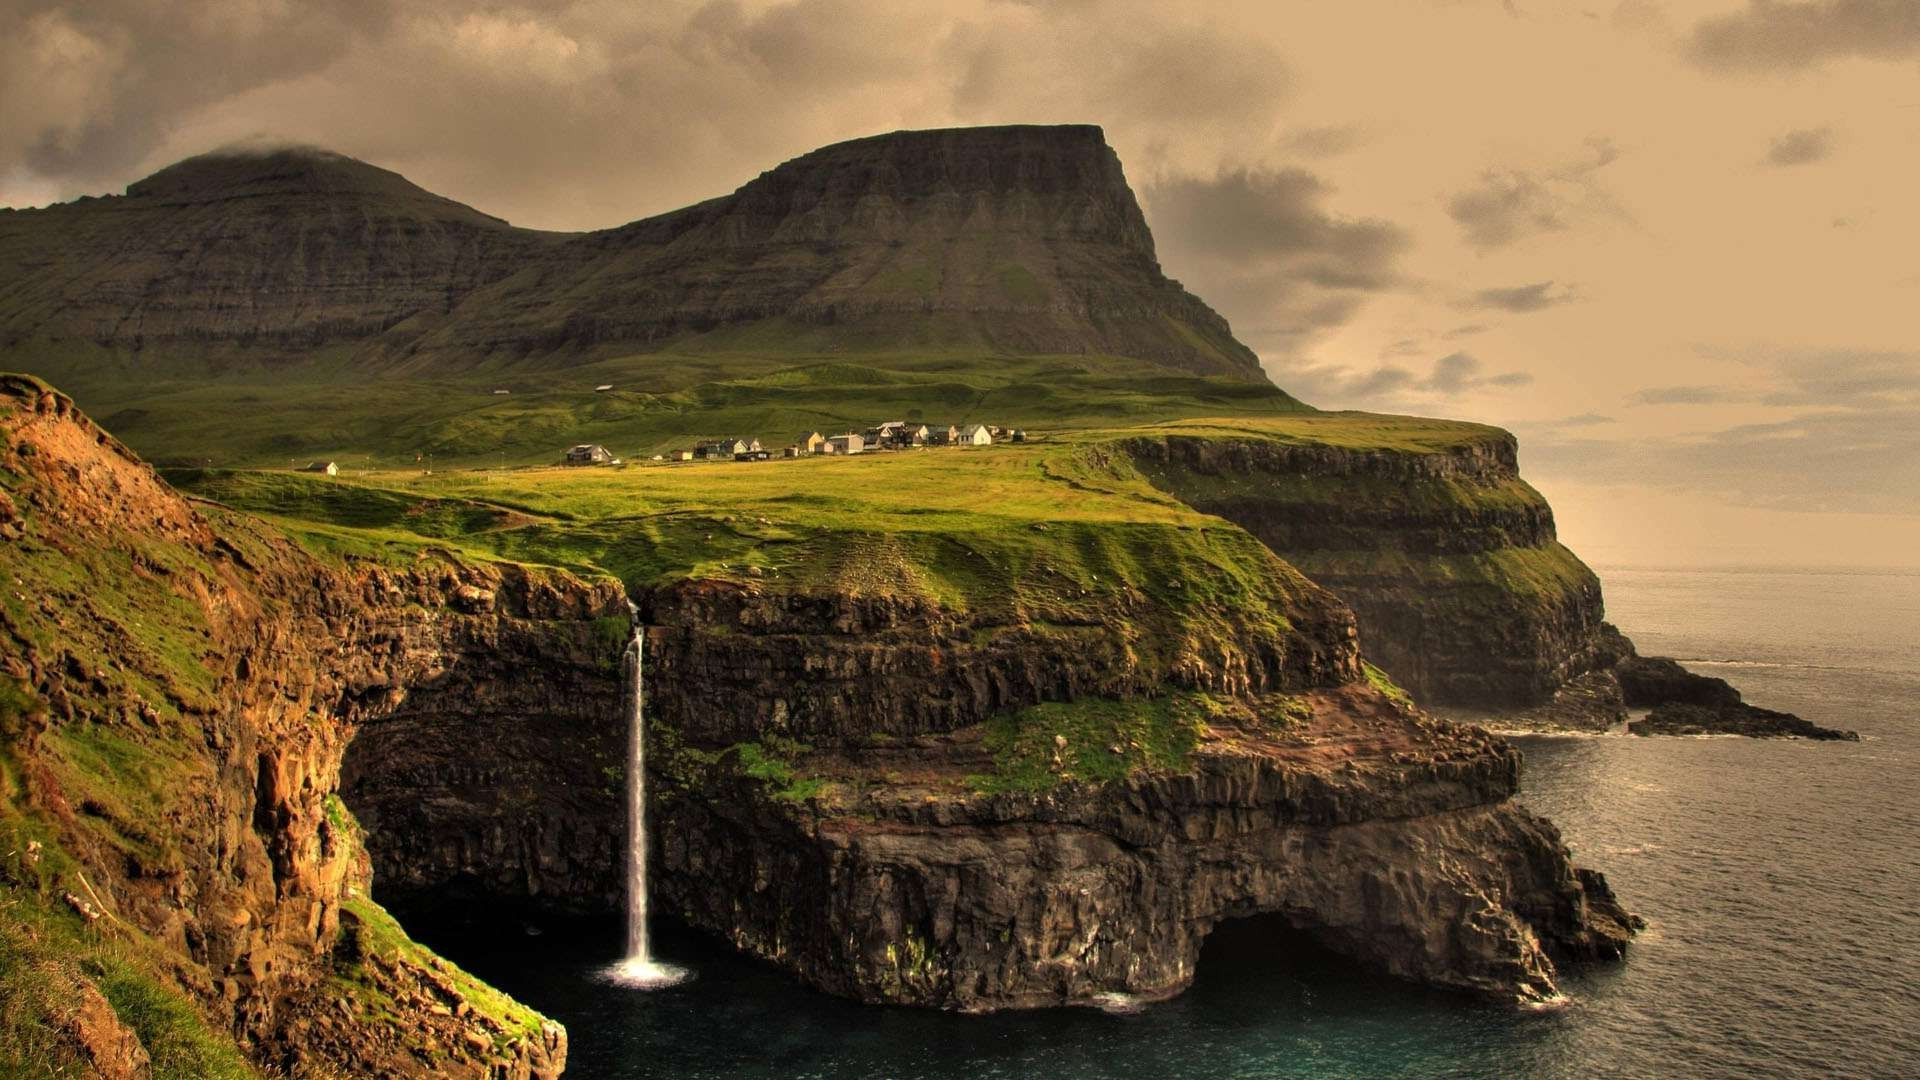 Gravity Falls 4k Wallpaper Anime Gasadalur Faroe Islands Landscape Waterfall